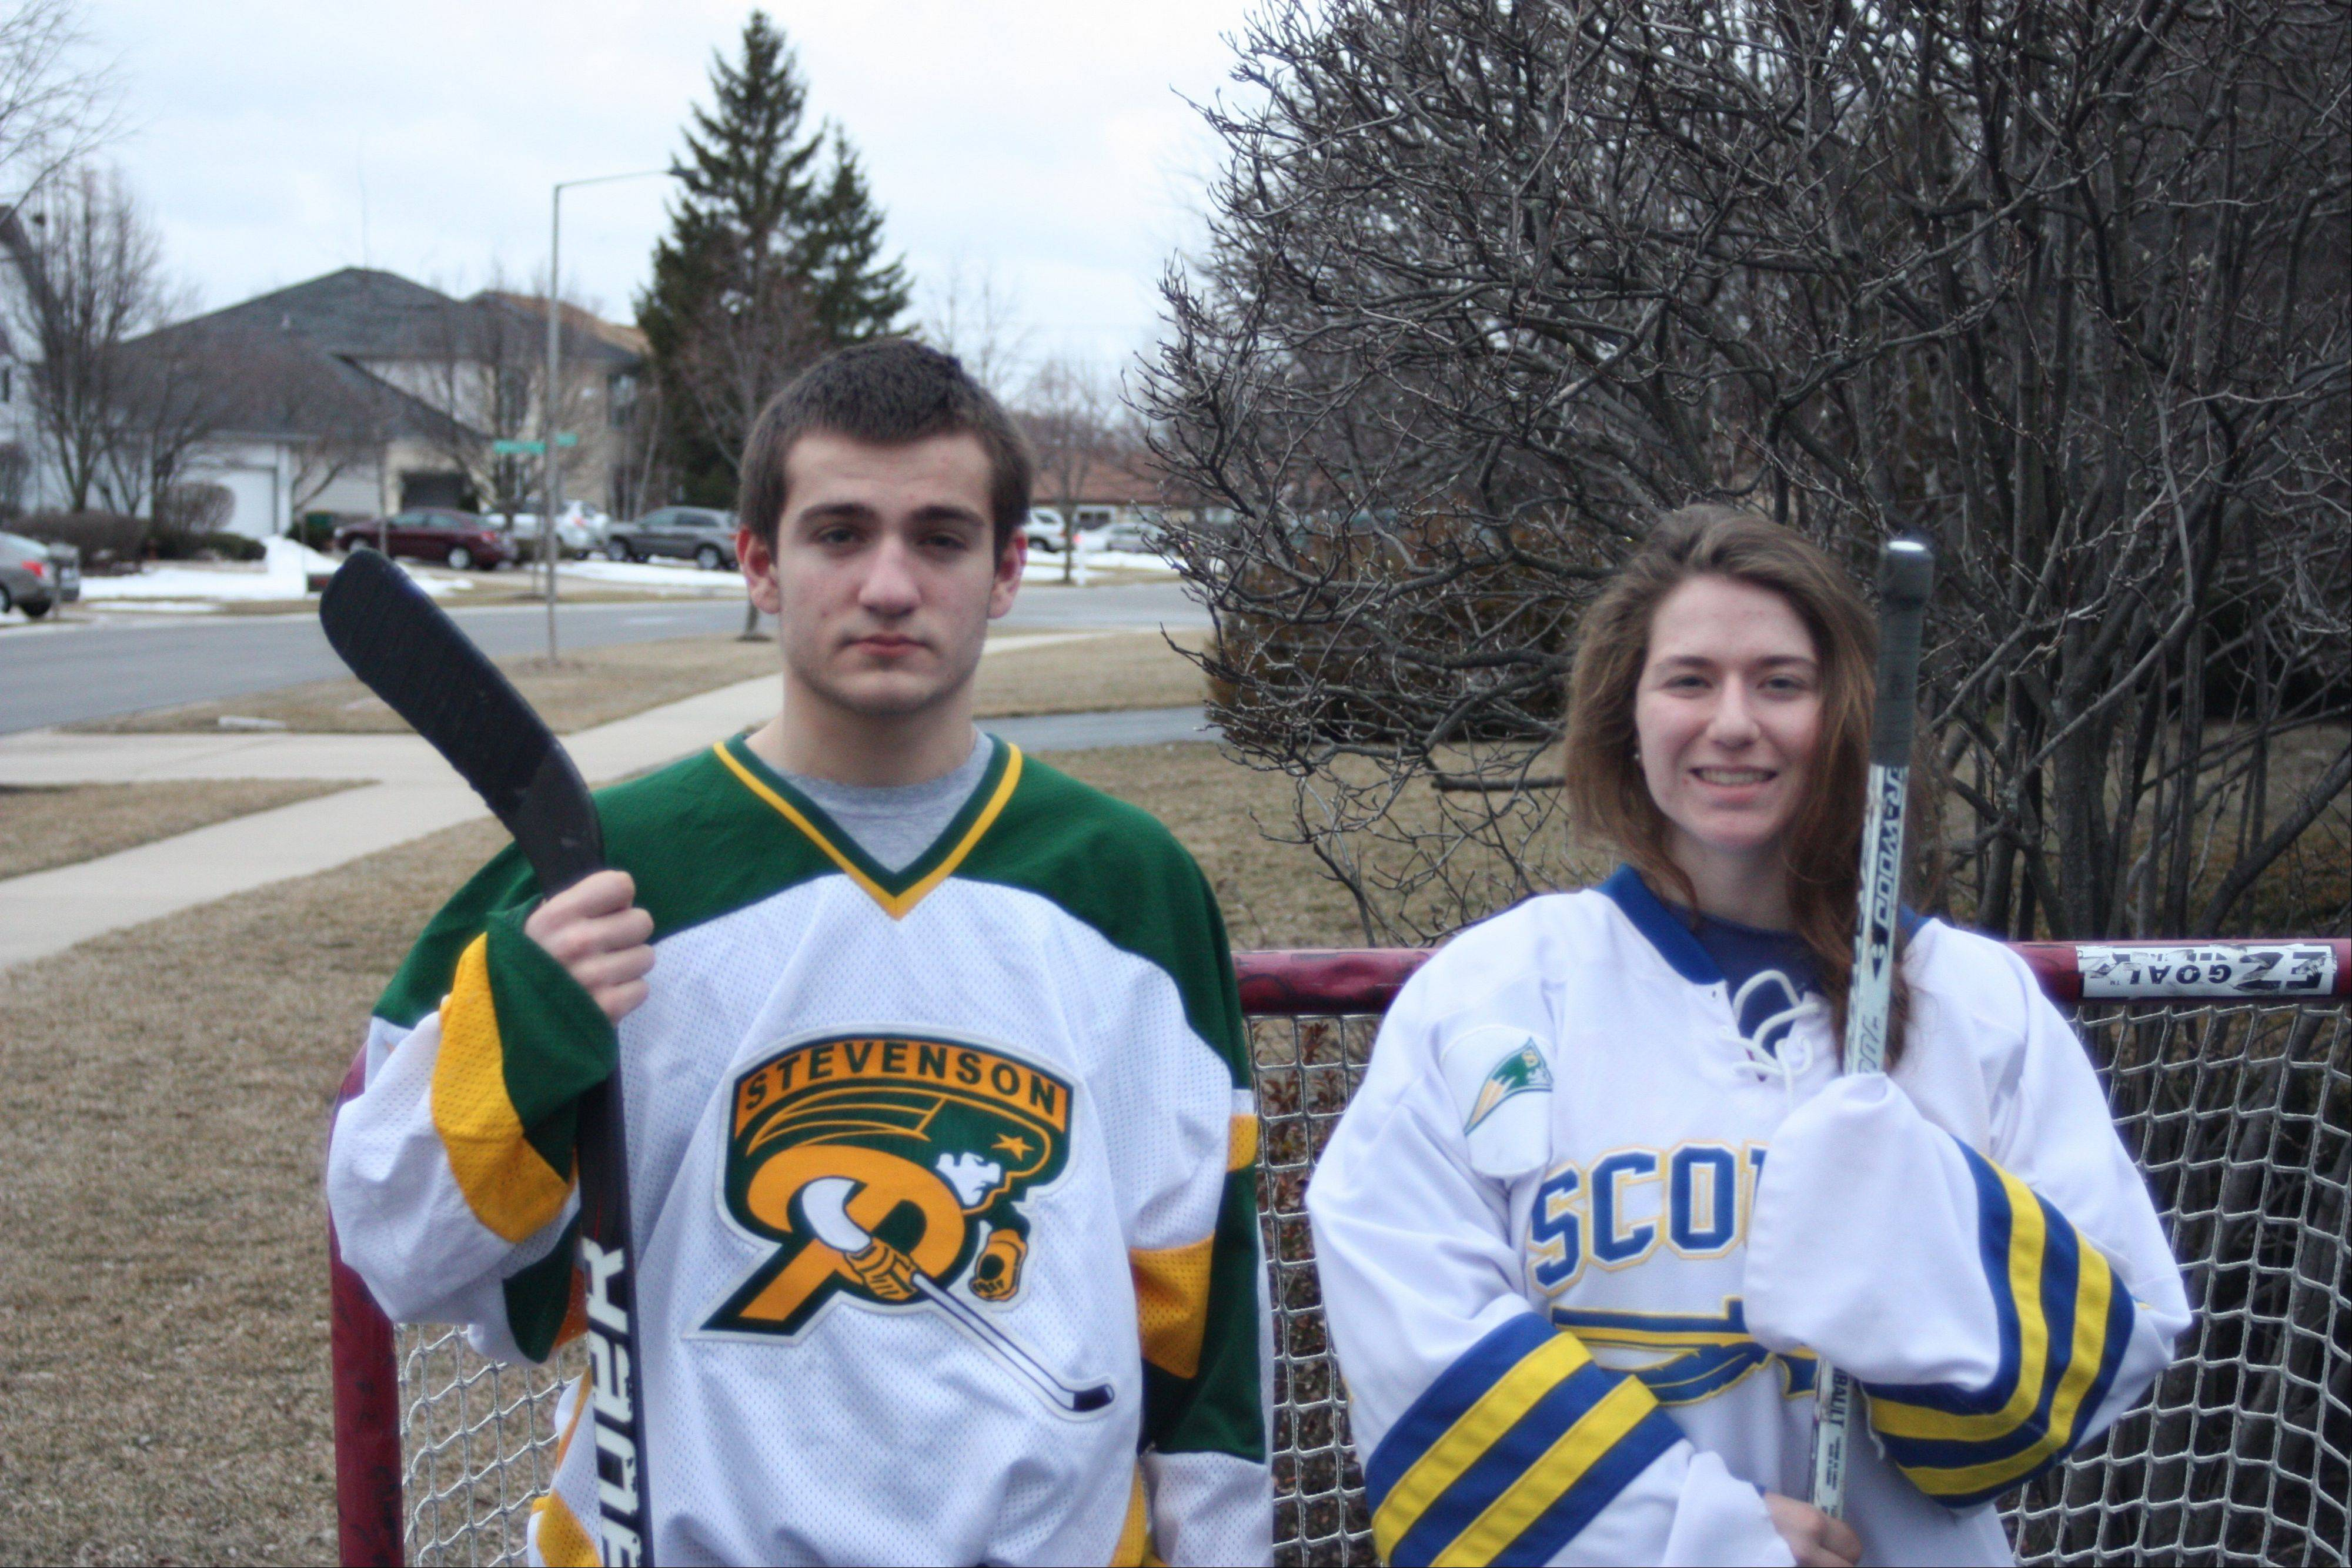 Stevenson siblings Jared and Lindsay Projanky had outstanding hockey seasons. Jared scored a team-best 26 goals for Stevenson, while Lindsay backstopped the co-op Lake Forest squad to a state championship.